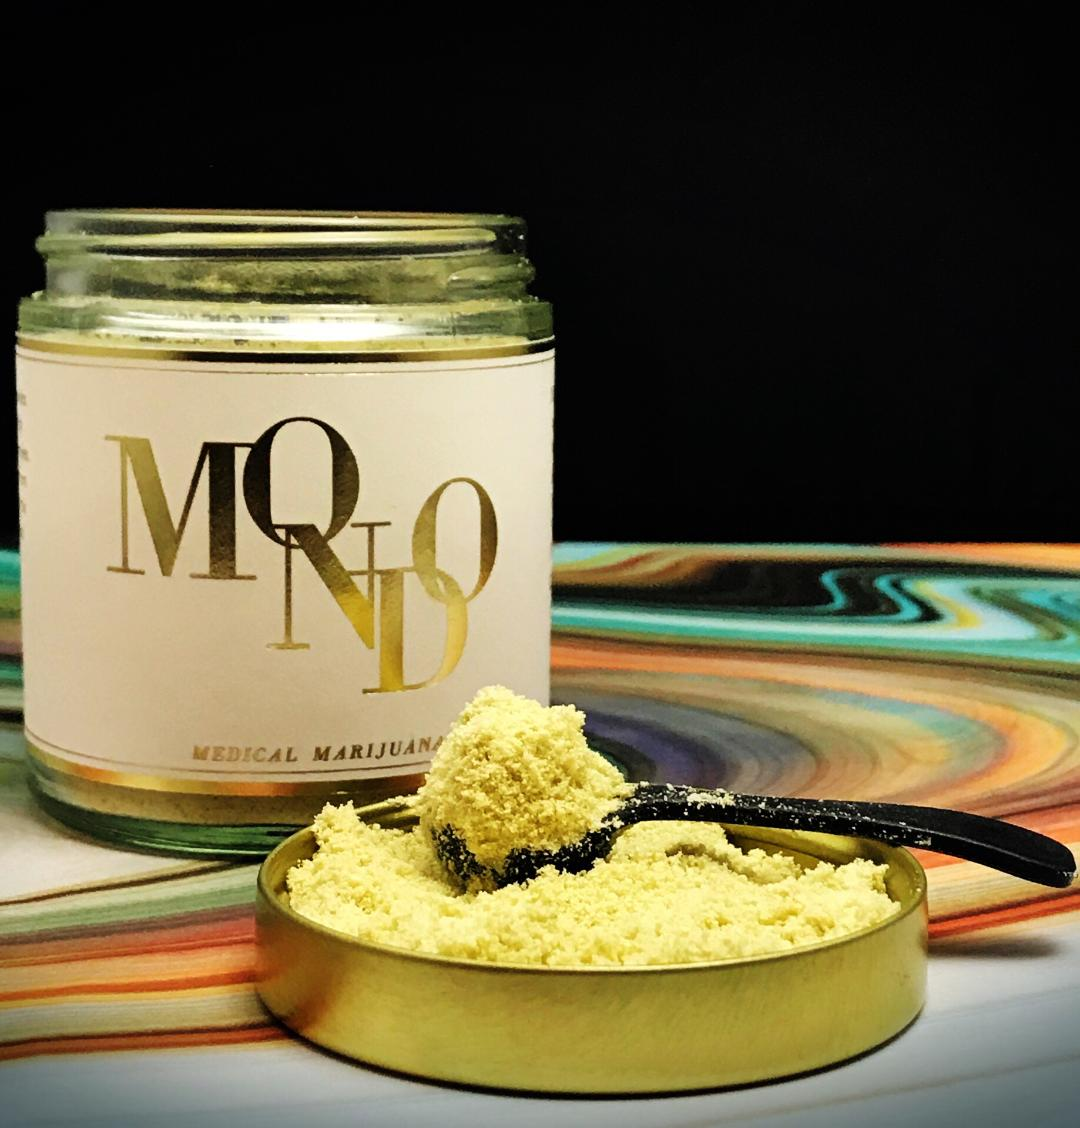 """Mondo Meds - Mondo Med's makes micro dosing simple with an all natural, low calorie cannabis powder that dissolves almost instantly. Mondo is perfect for anyone wanting the benefits of THC without extra calories or sugar, can be added to many of your favorite foods or drinks and is almost tasteless.But it's not just the versatility that makes us love Mondo. Made strain specific with Blue Dream flower, (our house favorite) helps insure a more constant experience for relief from anxiety and stress. When finding relief for conditions like anxiety, stress or depression it's important to know that different strains of the cannabis plant can have different effects and benefits.Micro dosing is taking low amounts of THC in order to achieve the medicinal benefits without the psychoactive effects that may interfere with daily activities. The goal is not to get """"high"""" but to aid in the relief from conditions such as anxiety, stress, depression, sleep, fibromyalgia and pain. It's important to note dosing and tolerance levels vary person to person. We recommend starting with 2.5 mg's and go low & slow, until you find what works best.Learn more MondoMeds.com"""